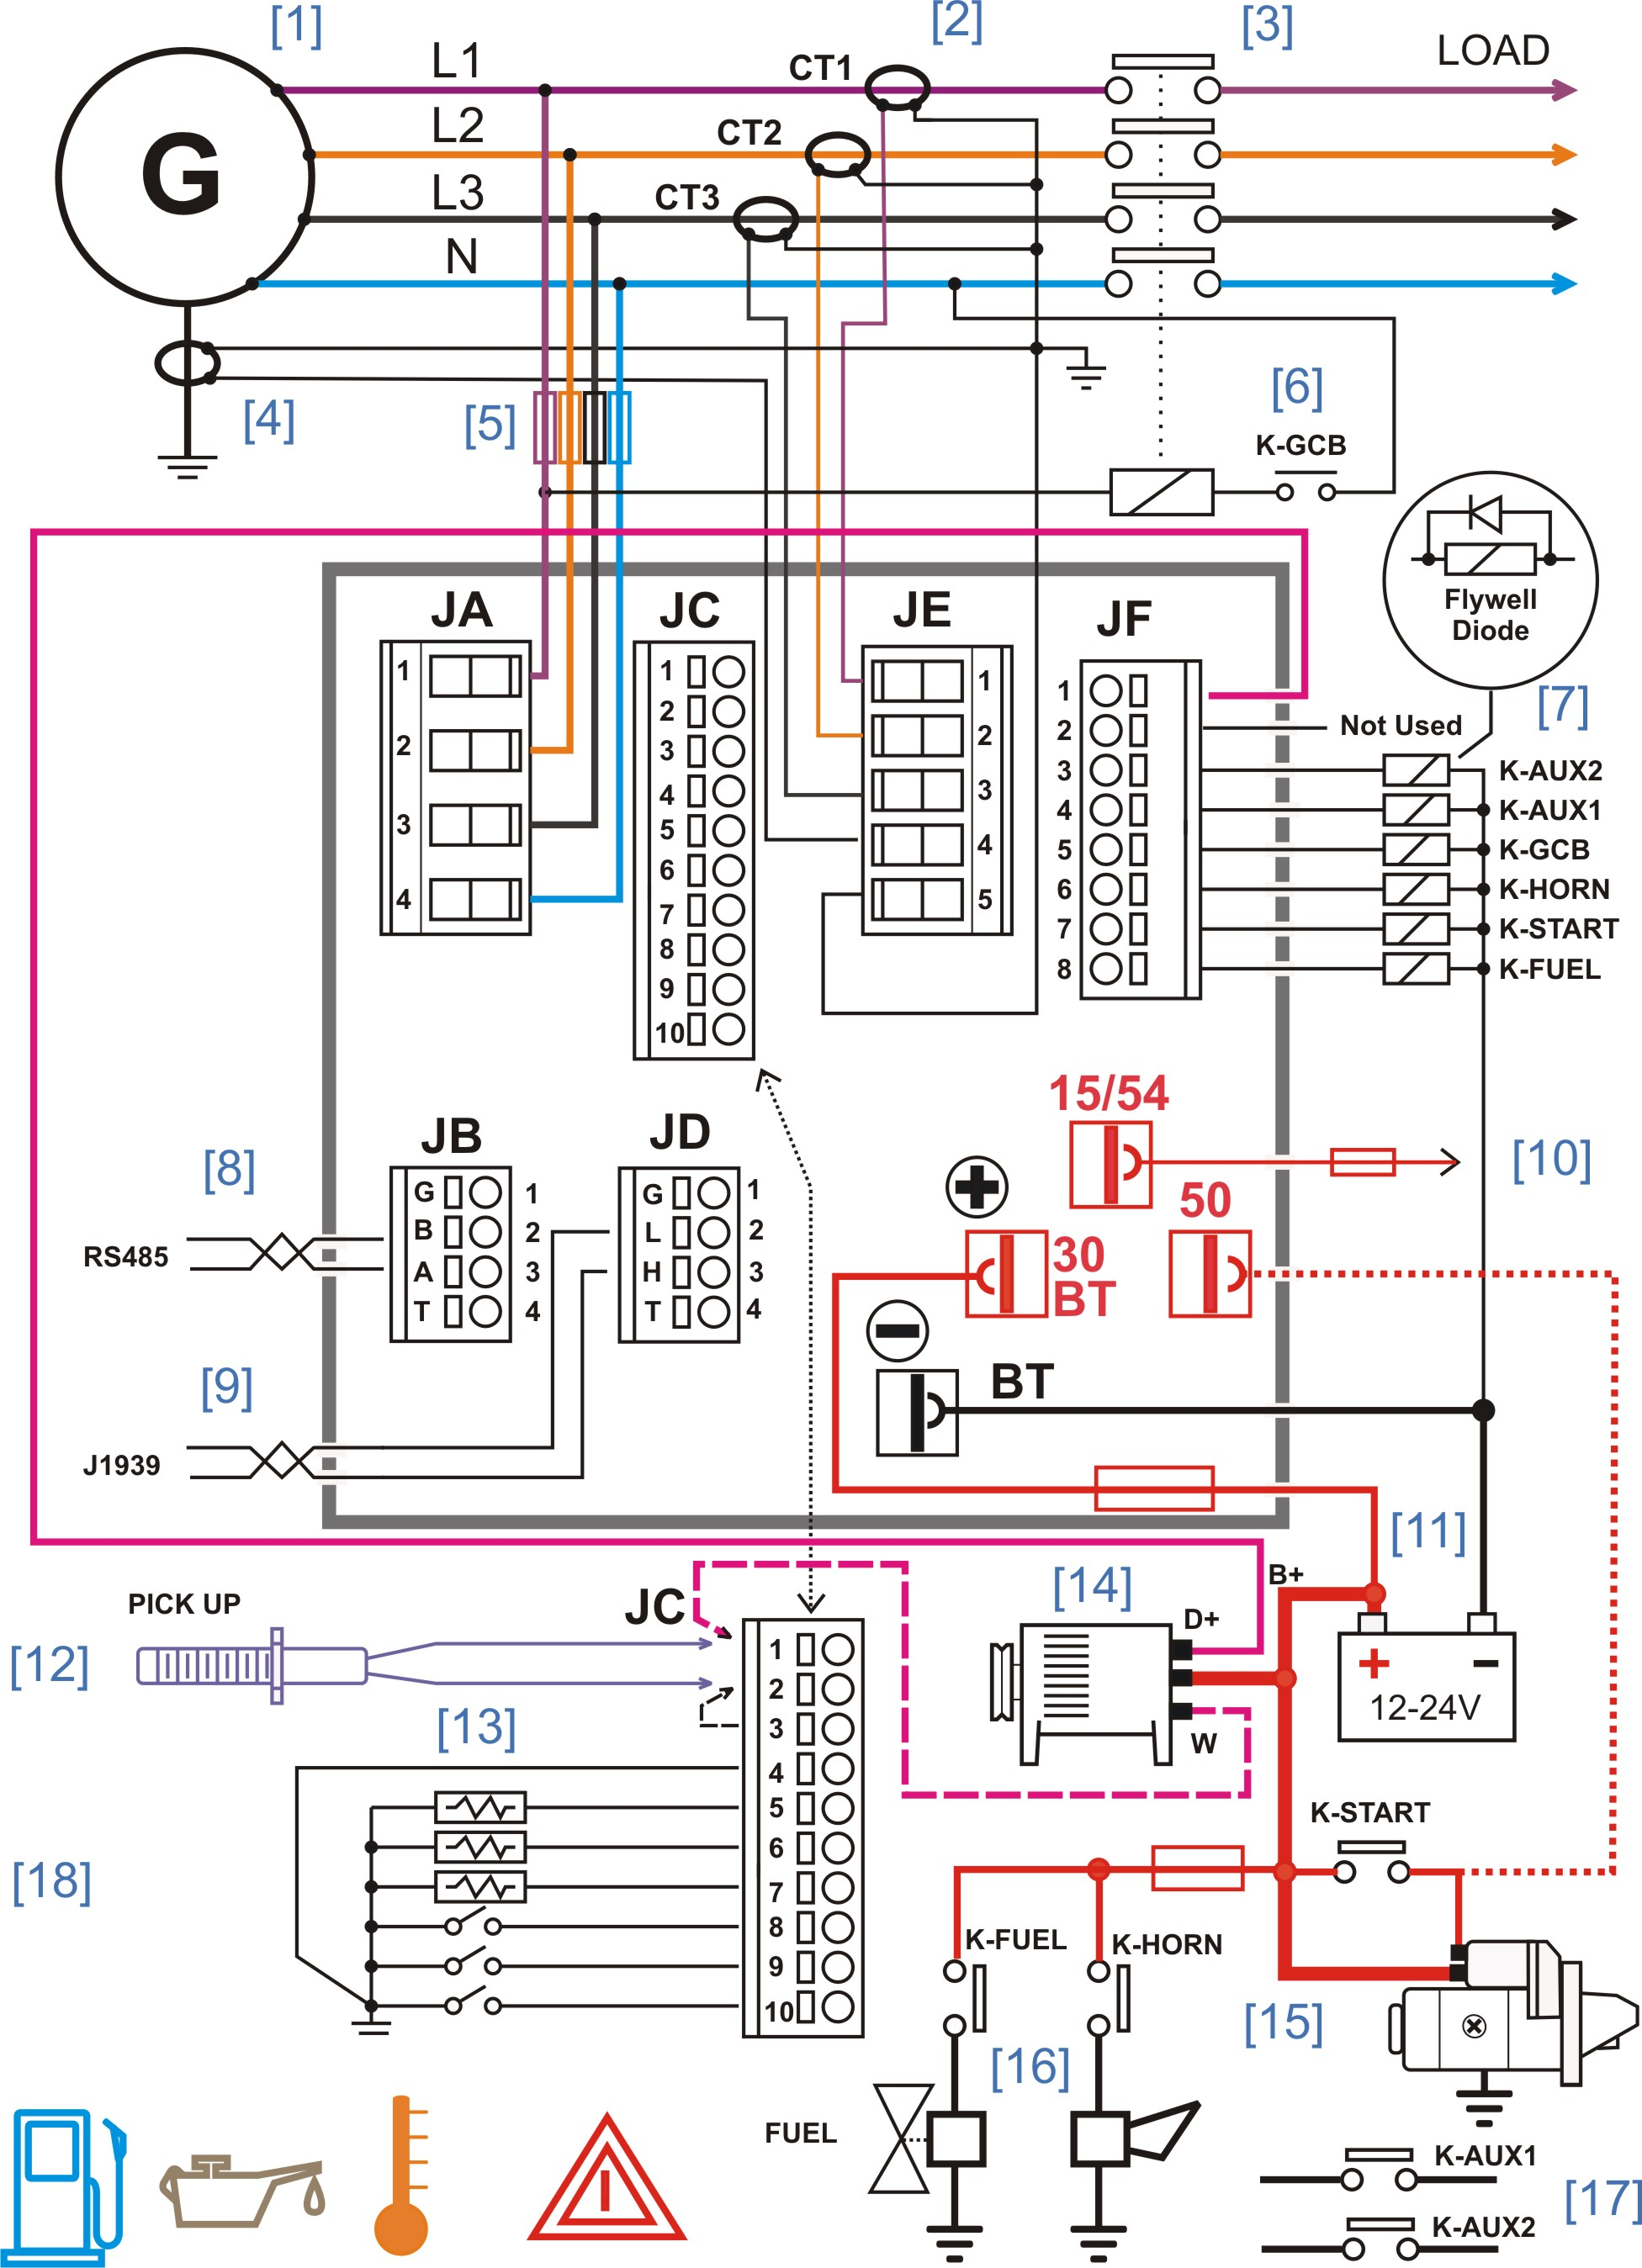 Submersible Pump Wiring Diagram Pdf: Kib Rv Monitor Panel Wiring Diagram - Simple Wiring Diagramsrh:13.12.2.zahnaerztin-carstens.de,Design